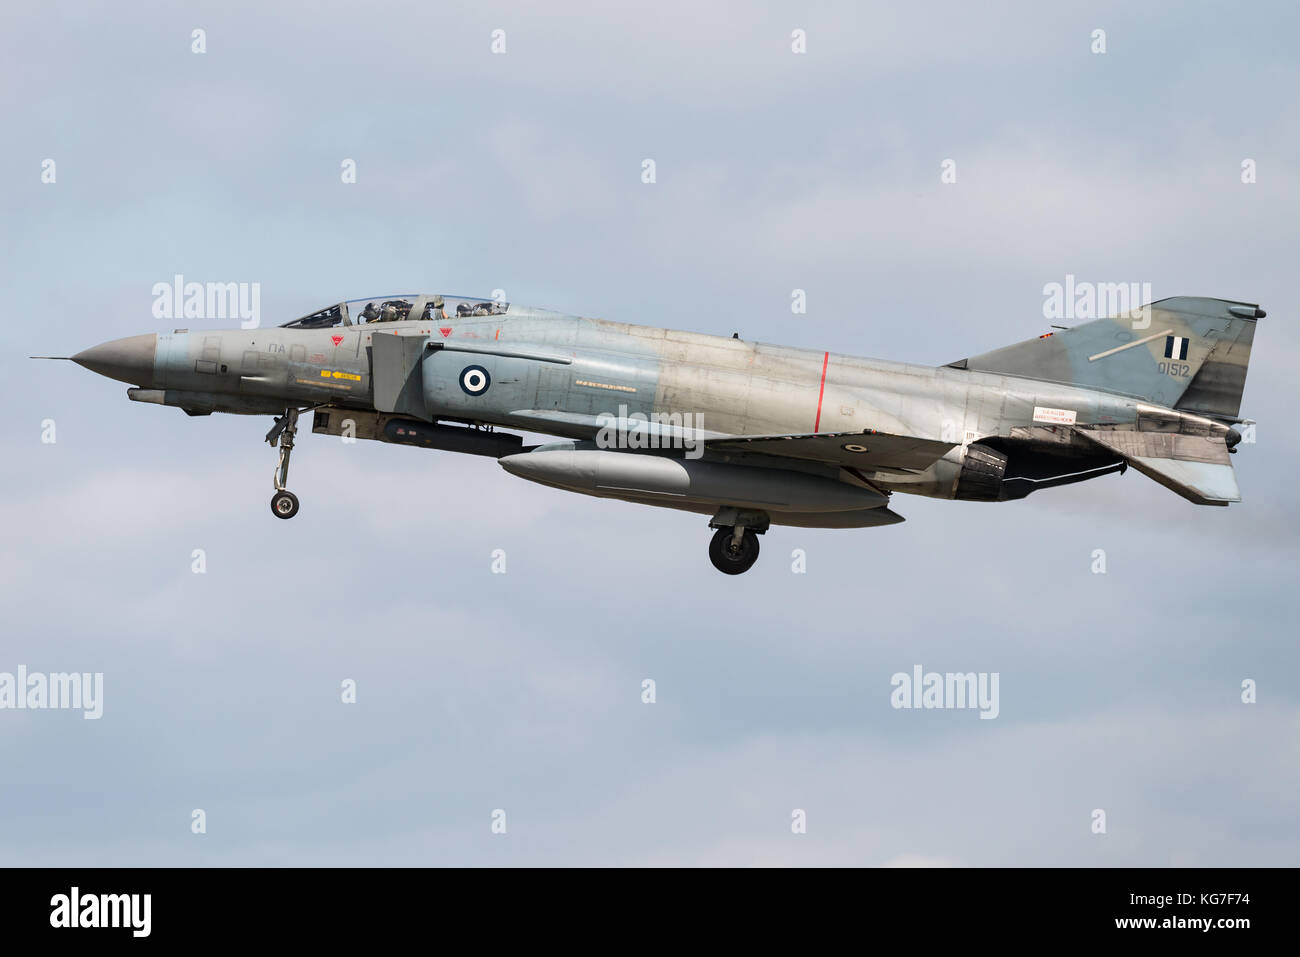 The McDonnell Douglas F-4 Phantom II fighter jet of the Hellenic Air Force at the Florennes Air Base in Belgium. Stock Photo